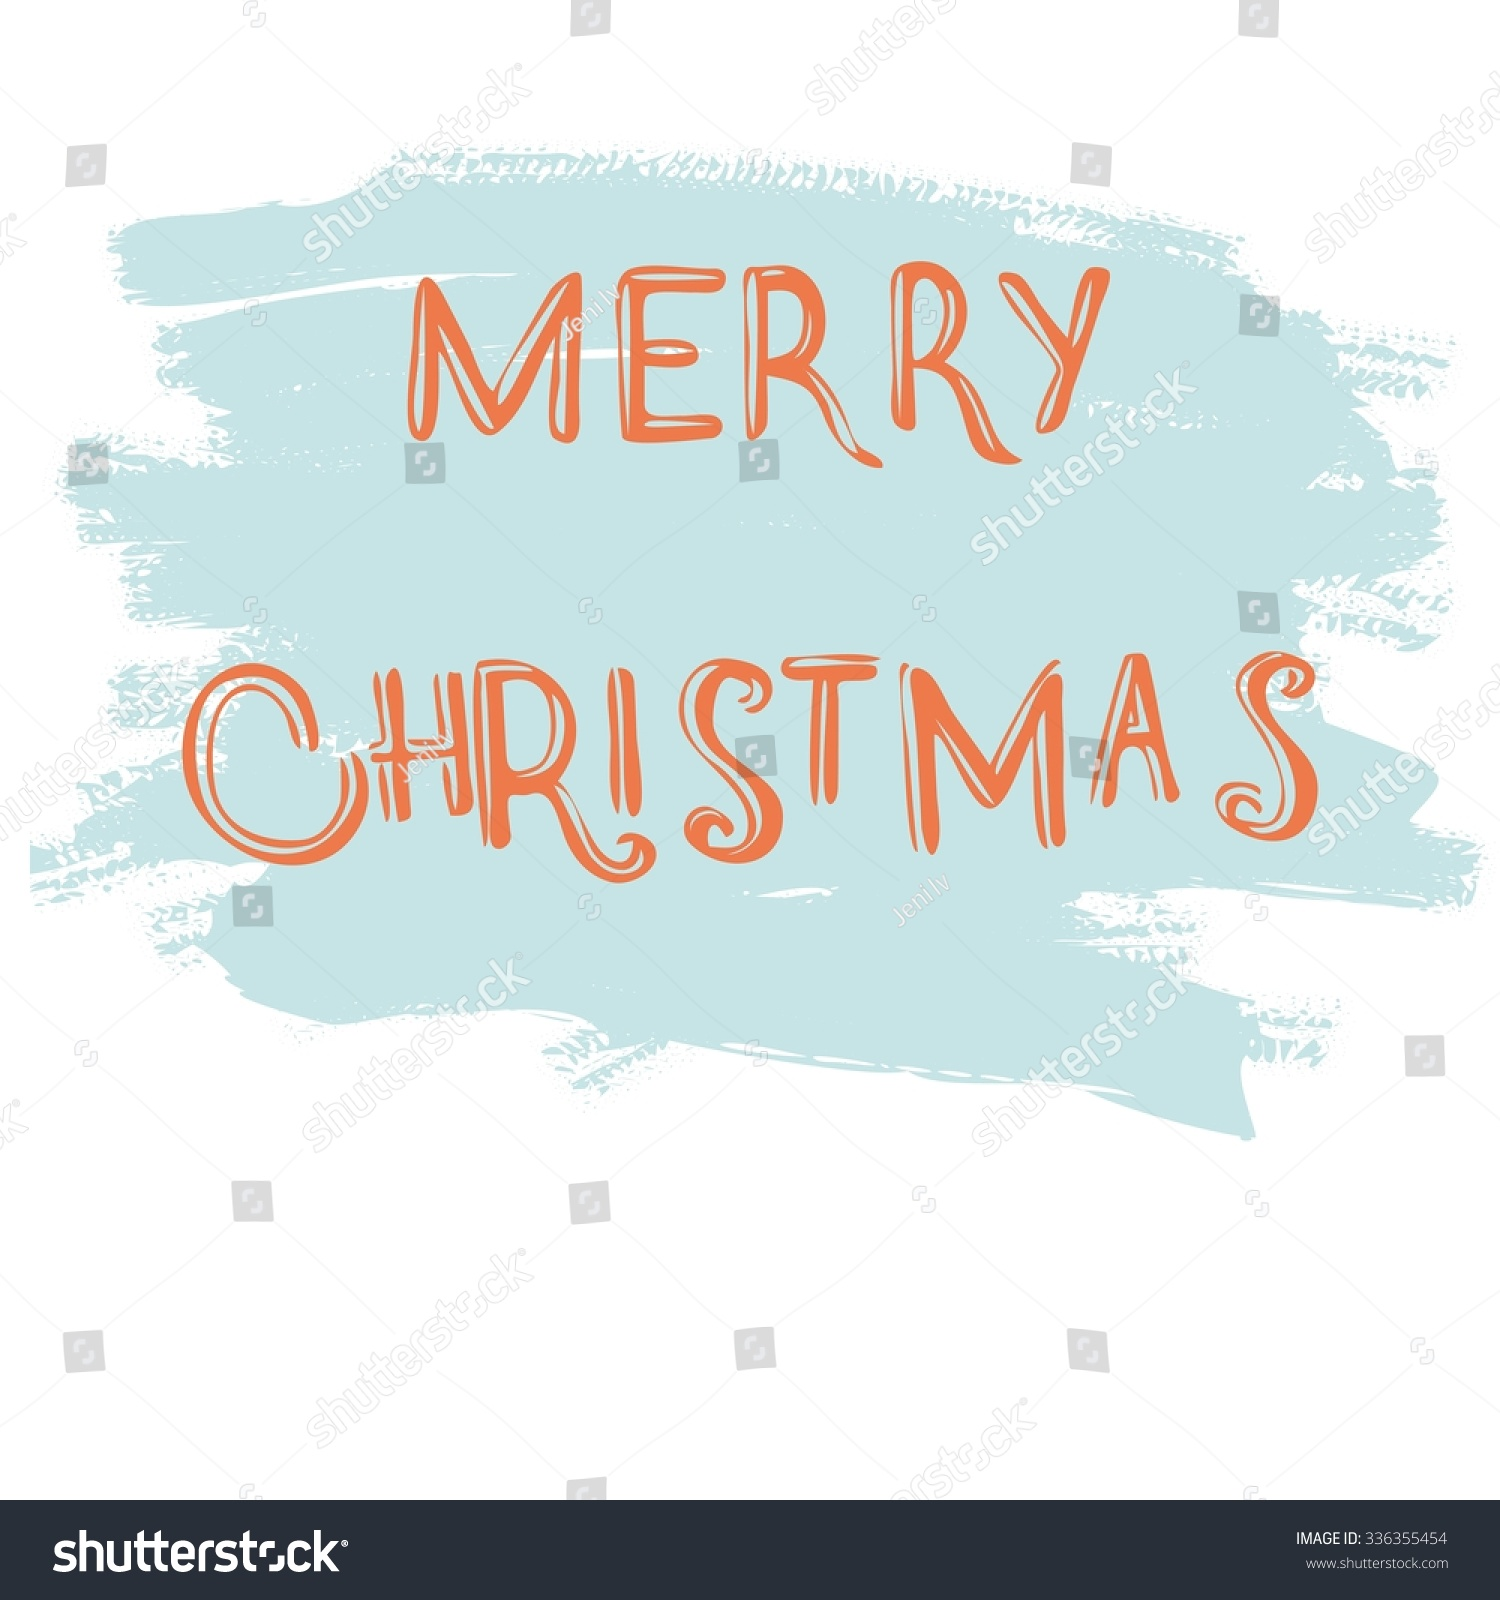 Merry Christmas Words Greeting Cards Cards Stock Vector 336355454